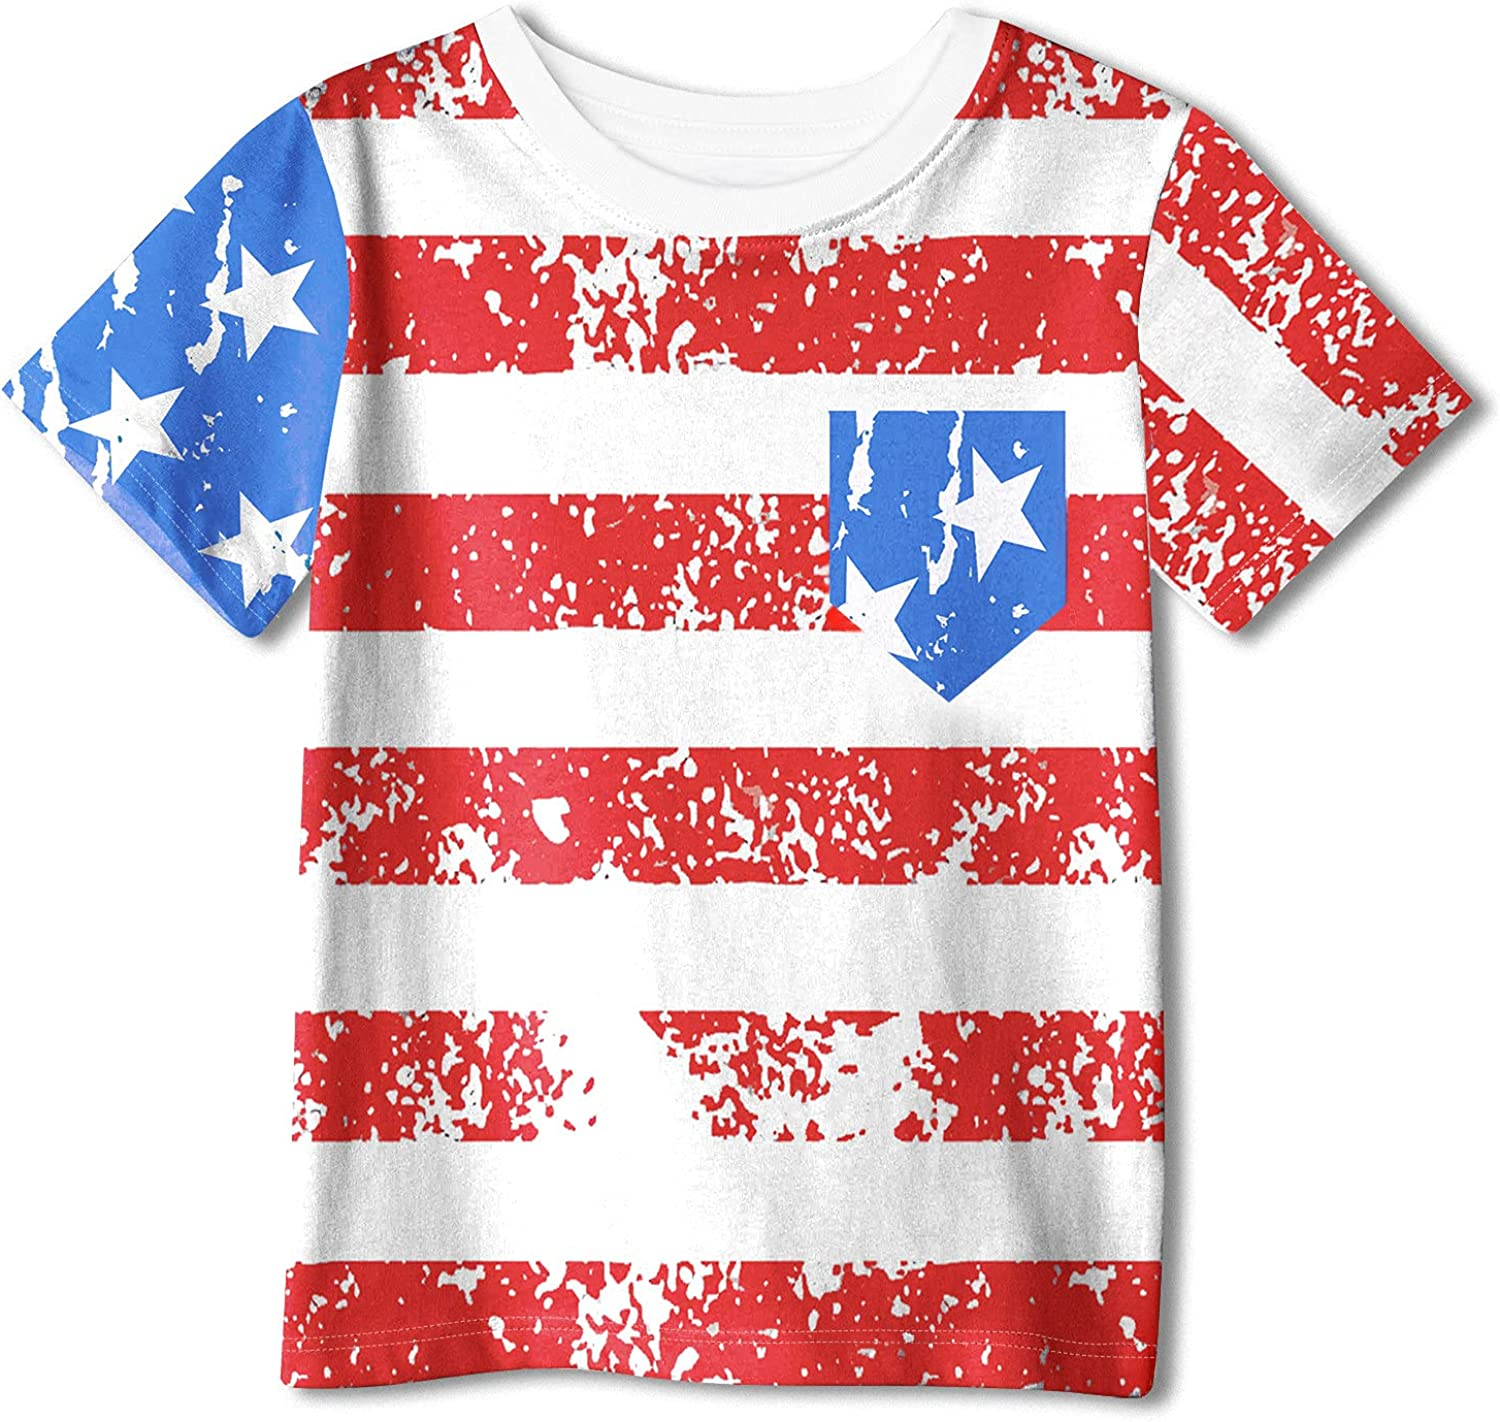 BesserBay Boys and Girls 4th of July American Flag Tee National Holidays Patriotic Cotton Tshirt 3-12 Years